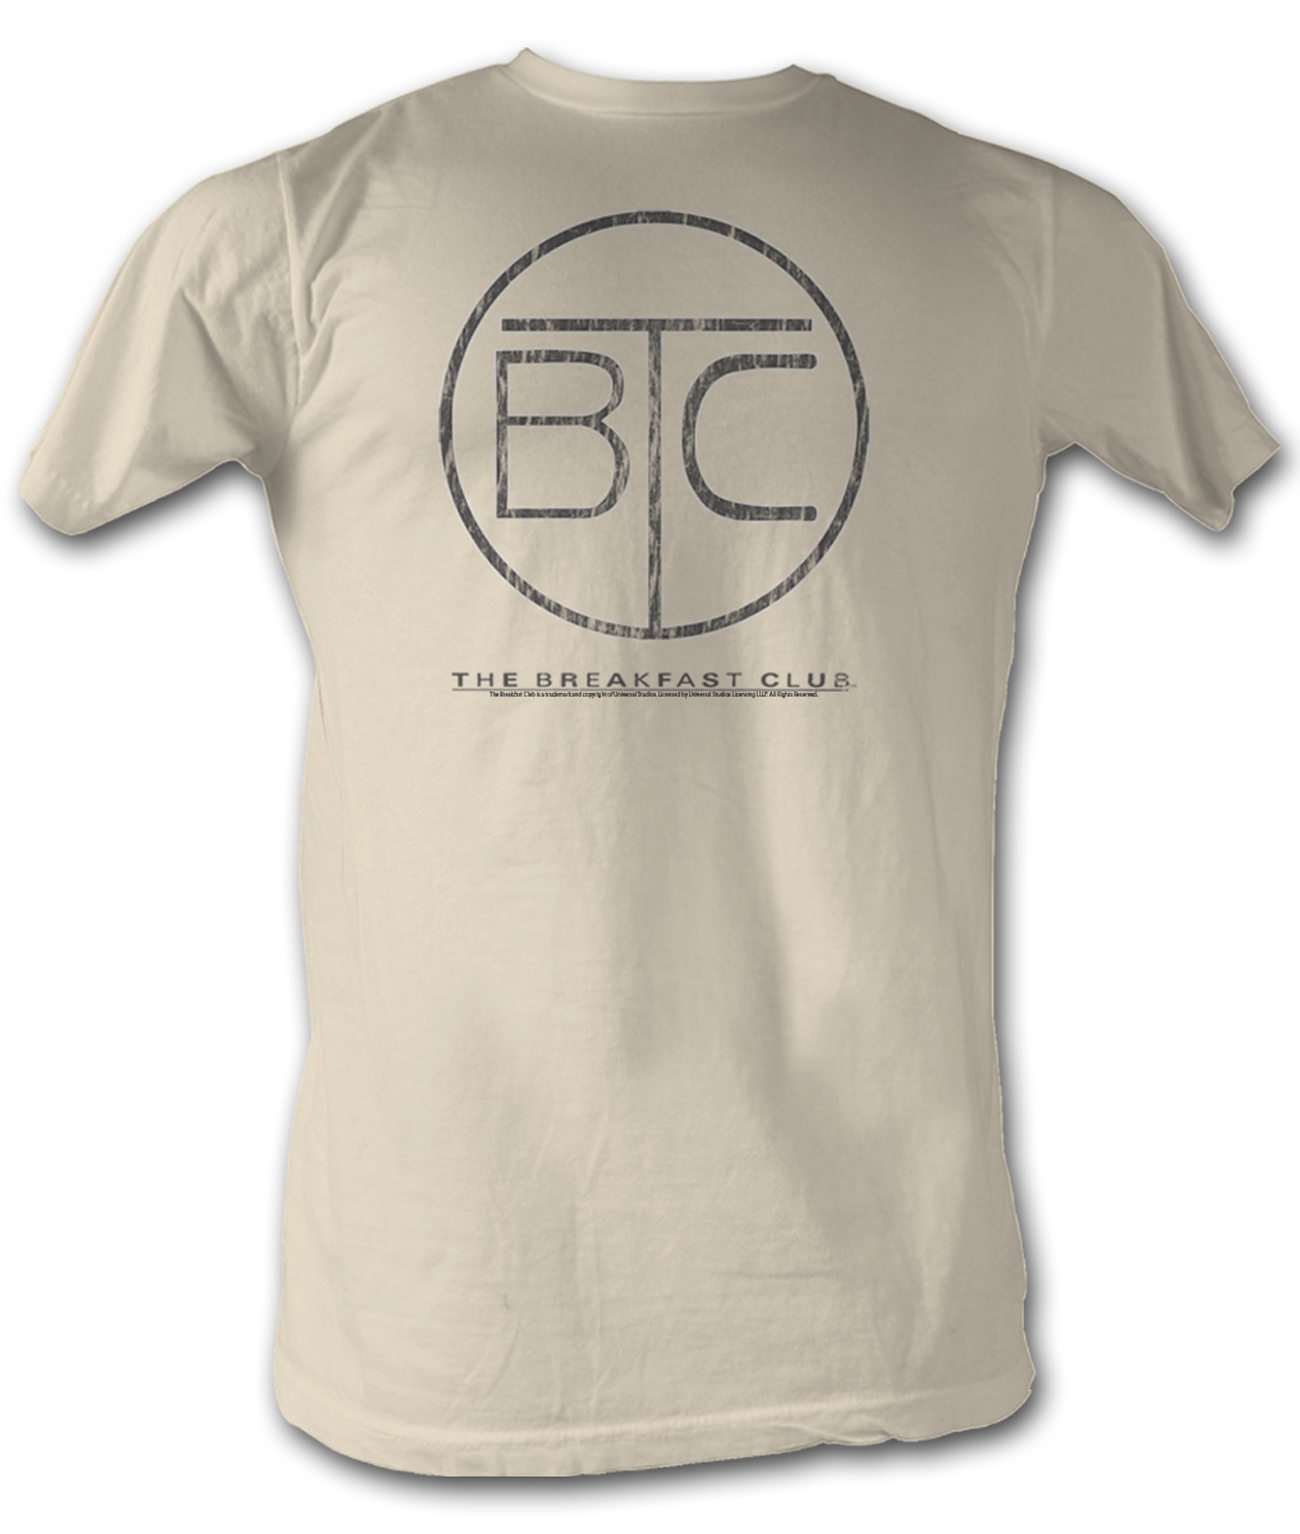 The breakfast club t shirt bfc circle logo dirty white tee for T shirts for clubs